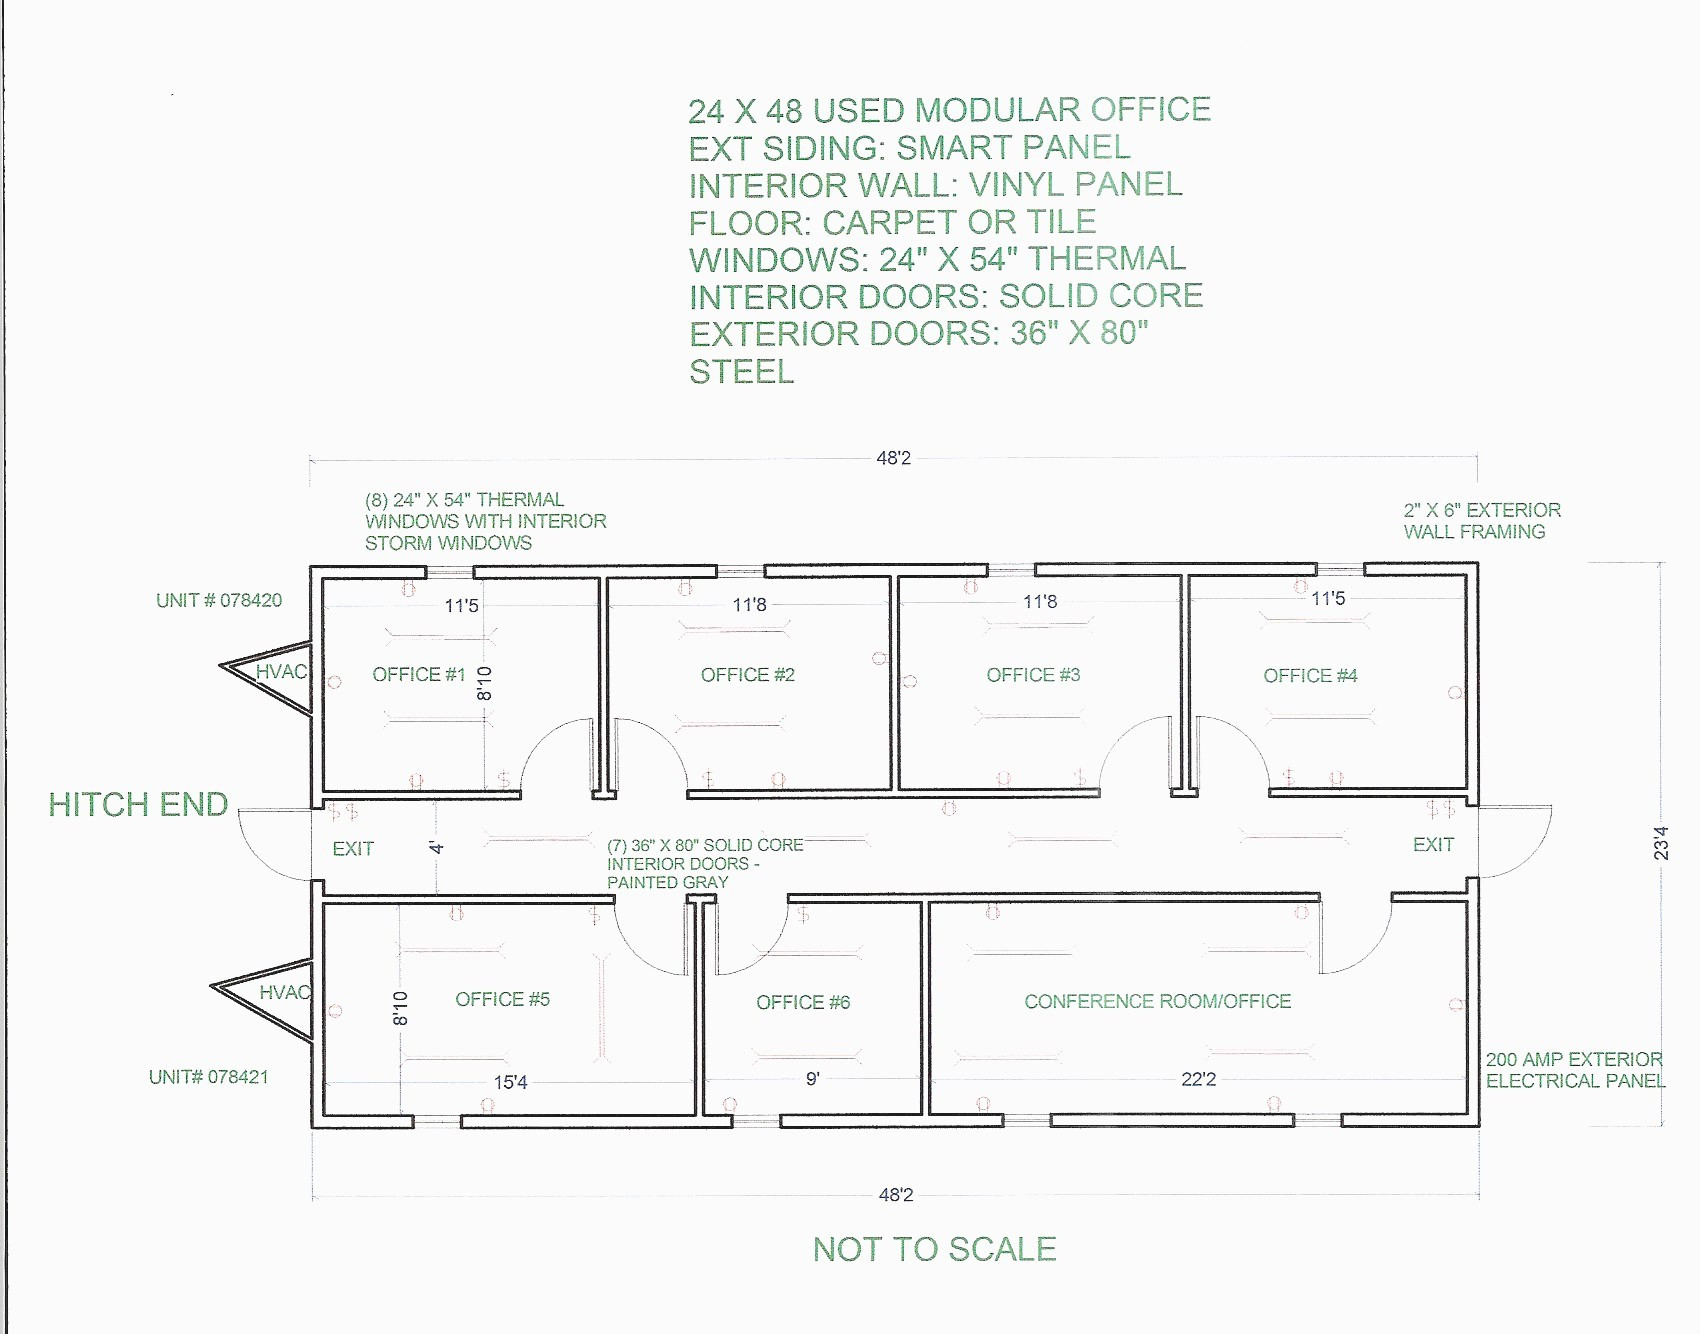 Magnificent Electrical Wiring Diagram For Mobile Home Wiring Library Double Wiring Cloud Pimpapsuggs Outletorg